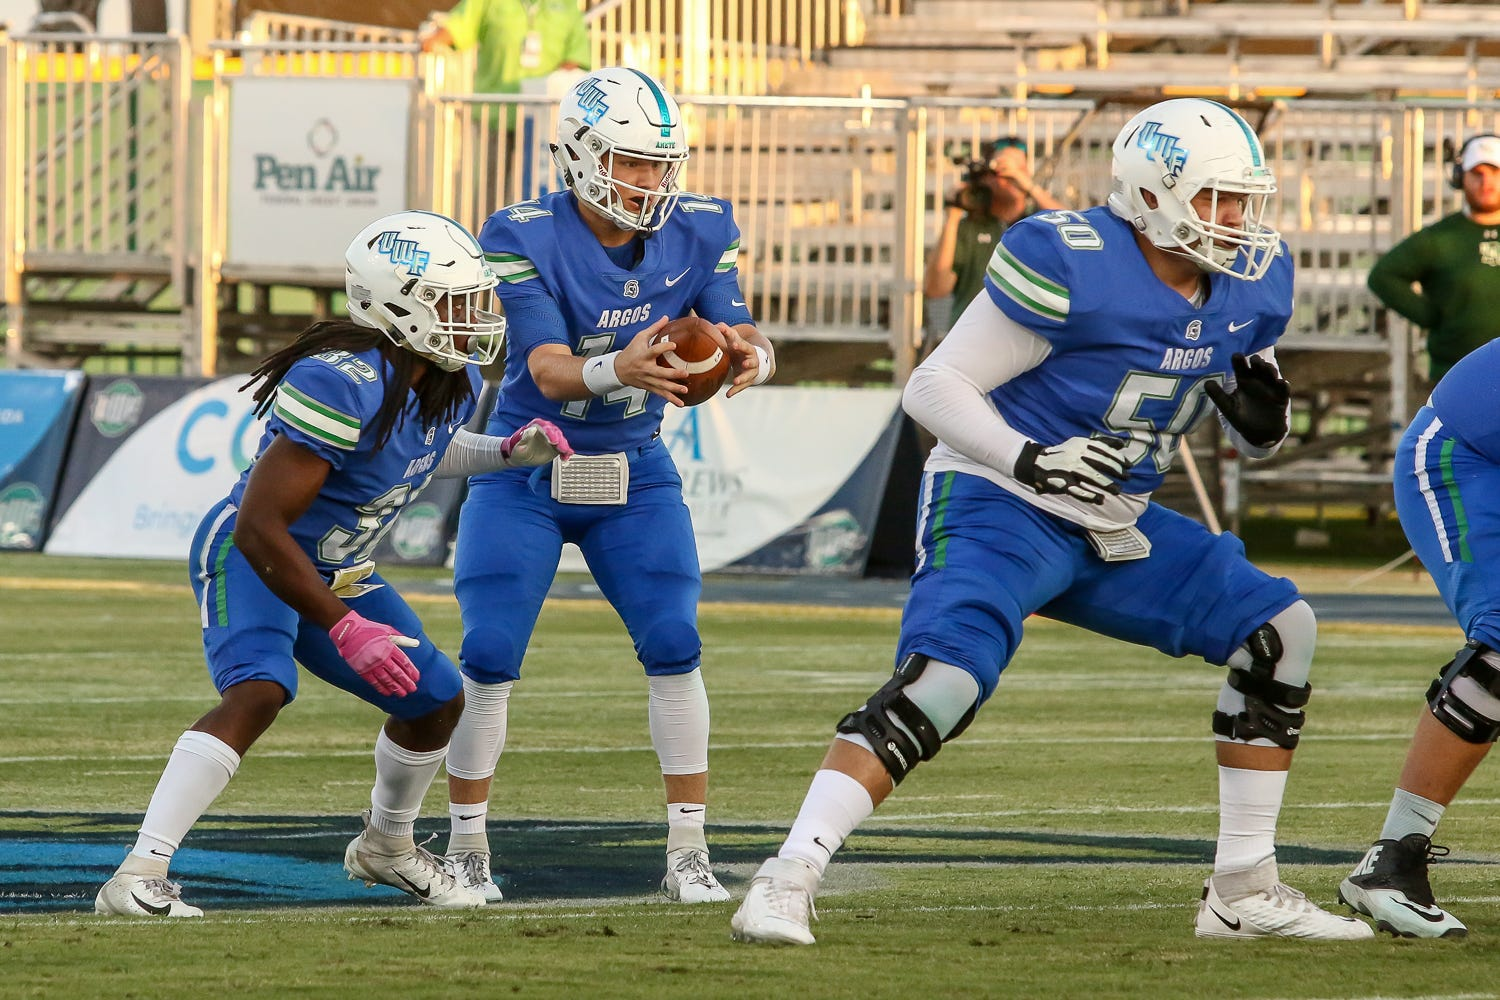 Uwf Football Austin Reed S Transfer Journey Pays Off For Argos Qb